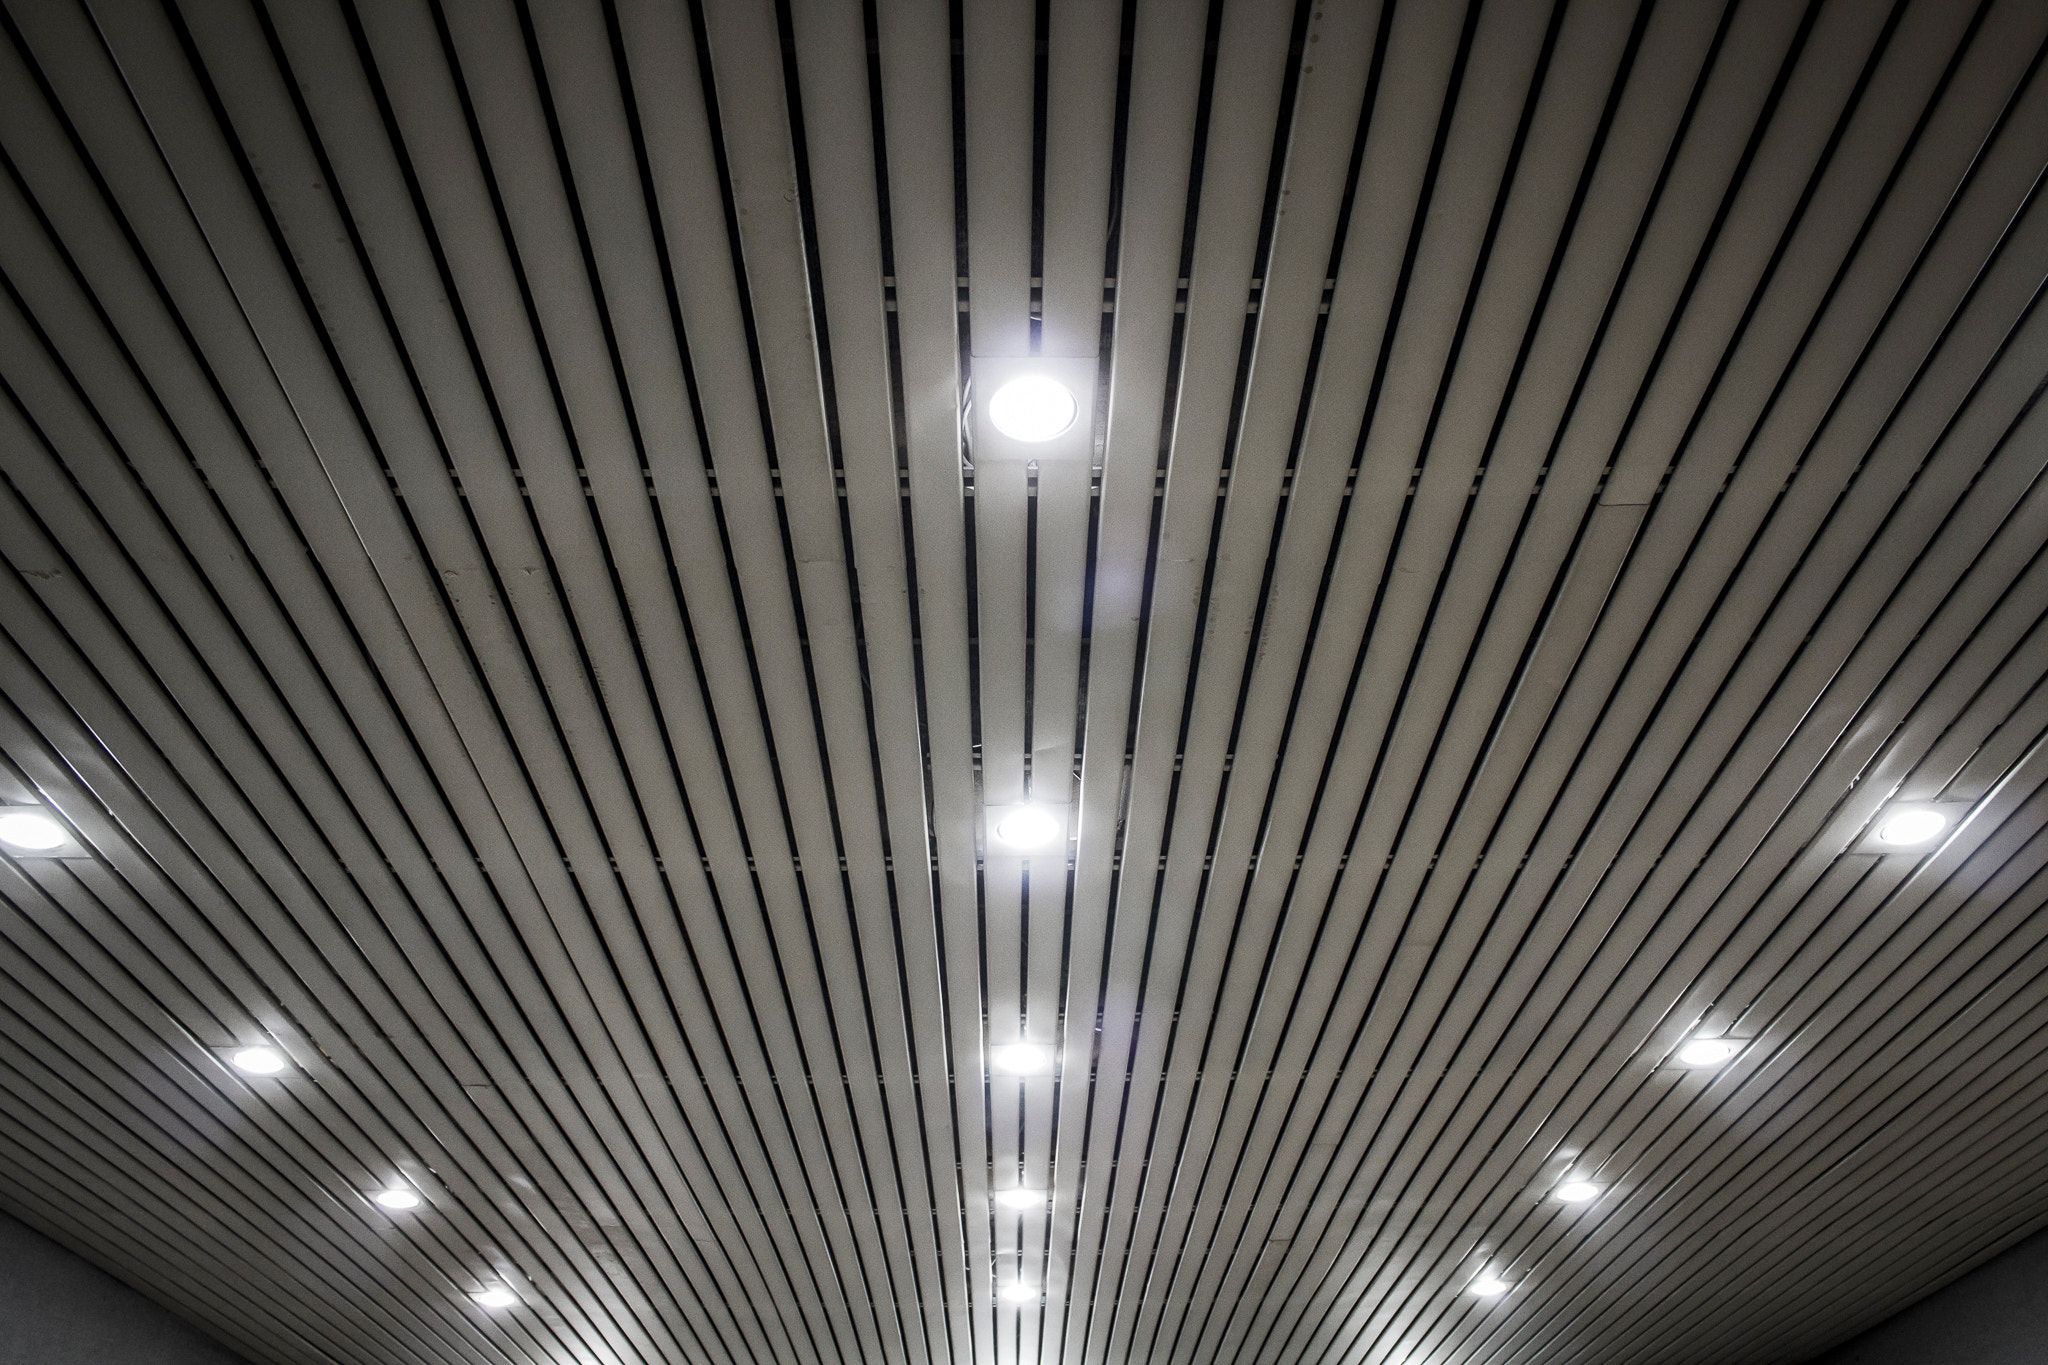 Photograph Ceiling by Manu Garcia on 500px